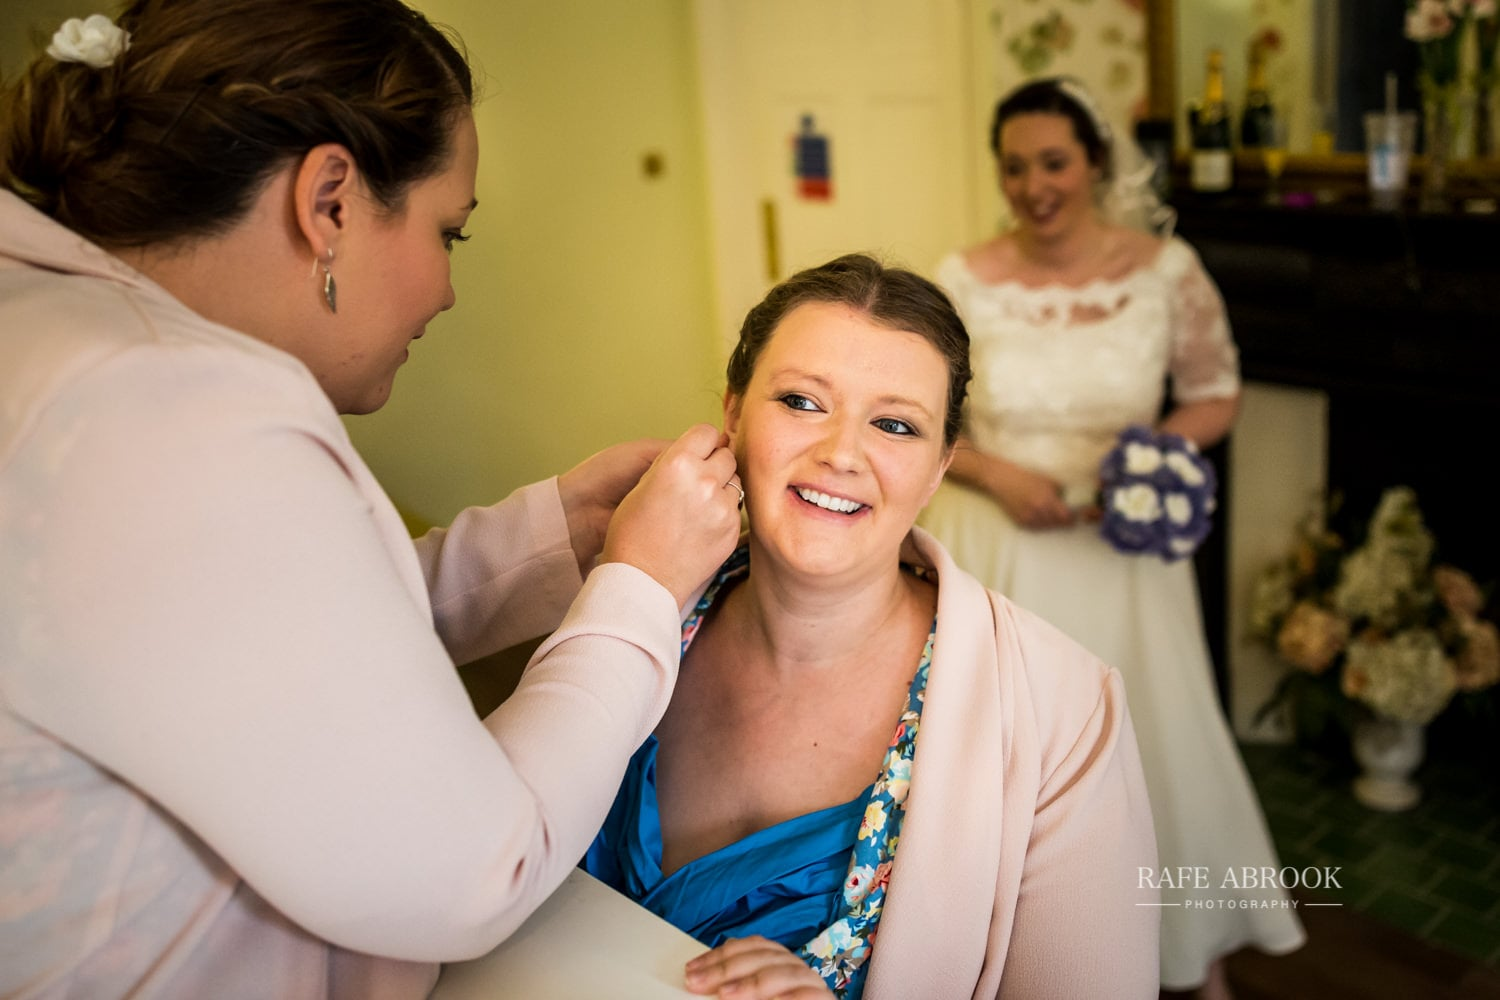 woodland manor hotel clapham bedford wedding hertfordshire wedding photographer-1052.jpg